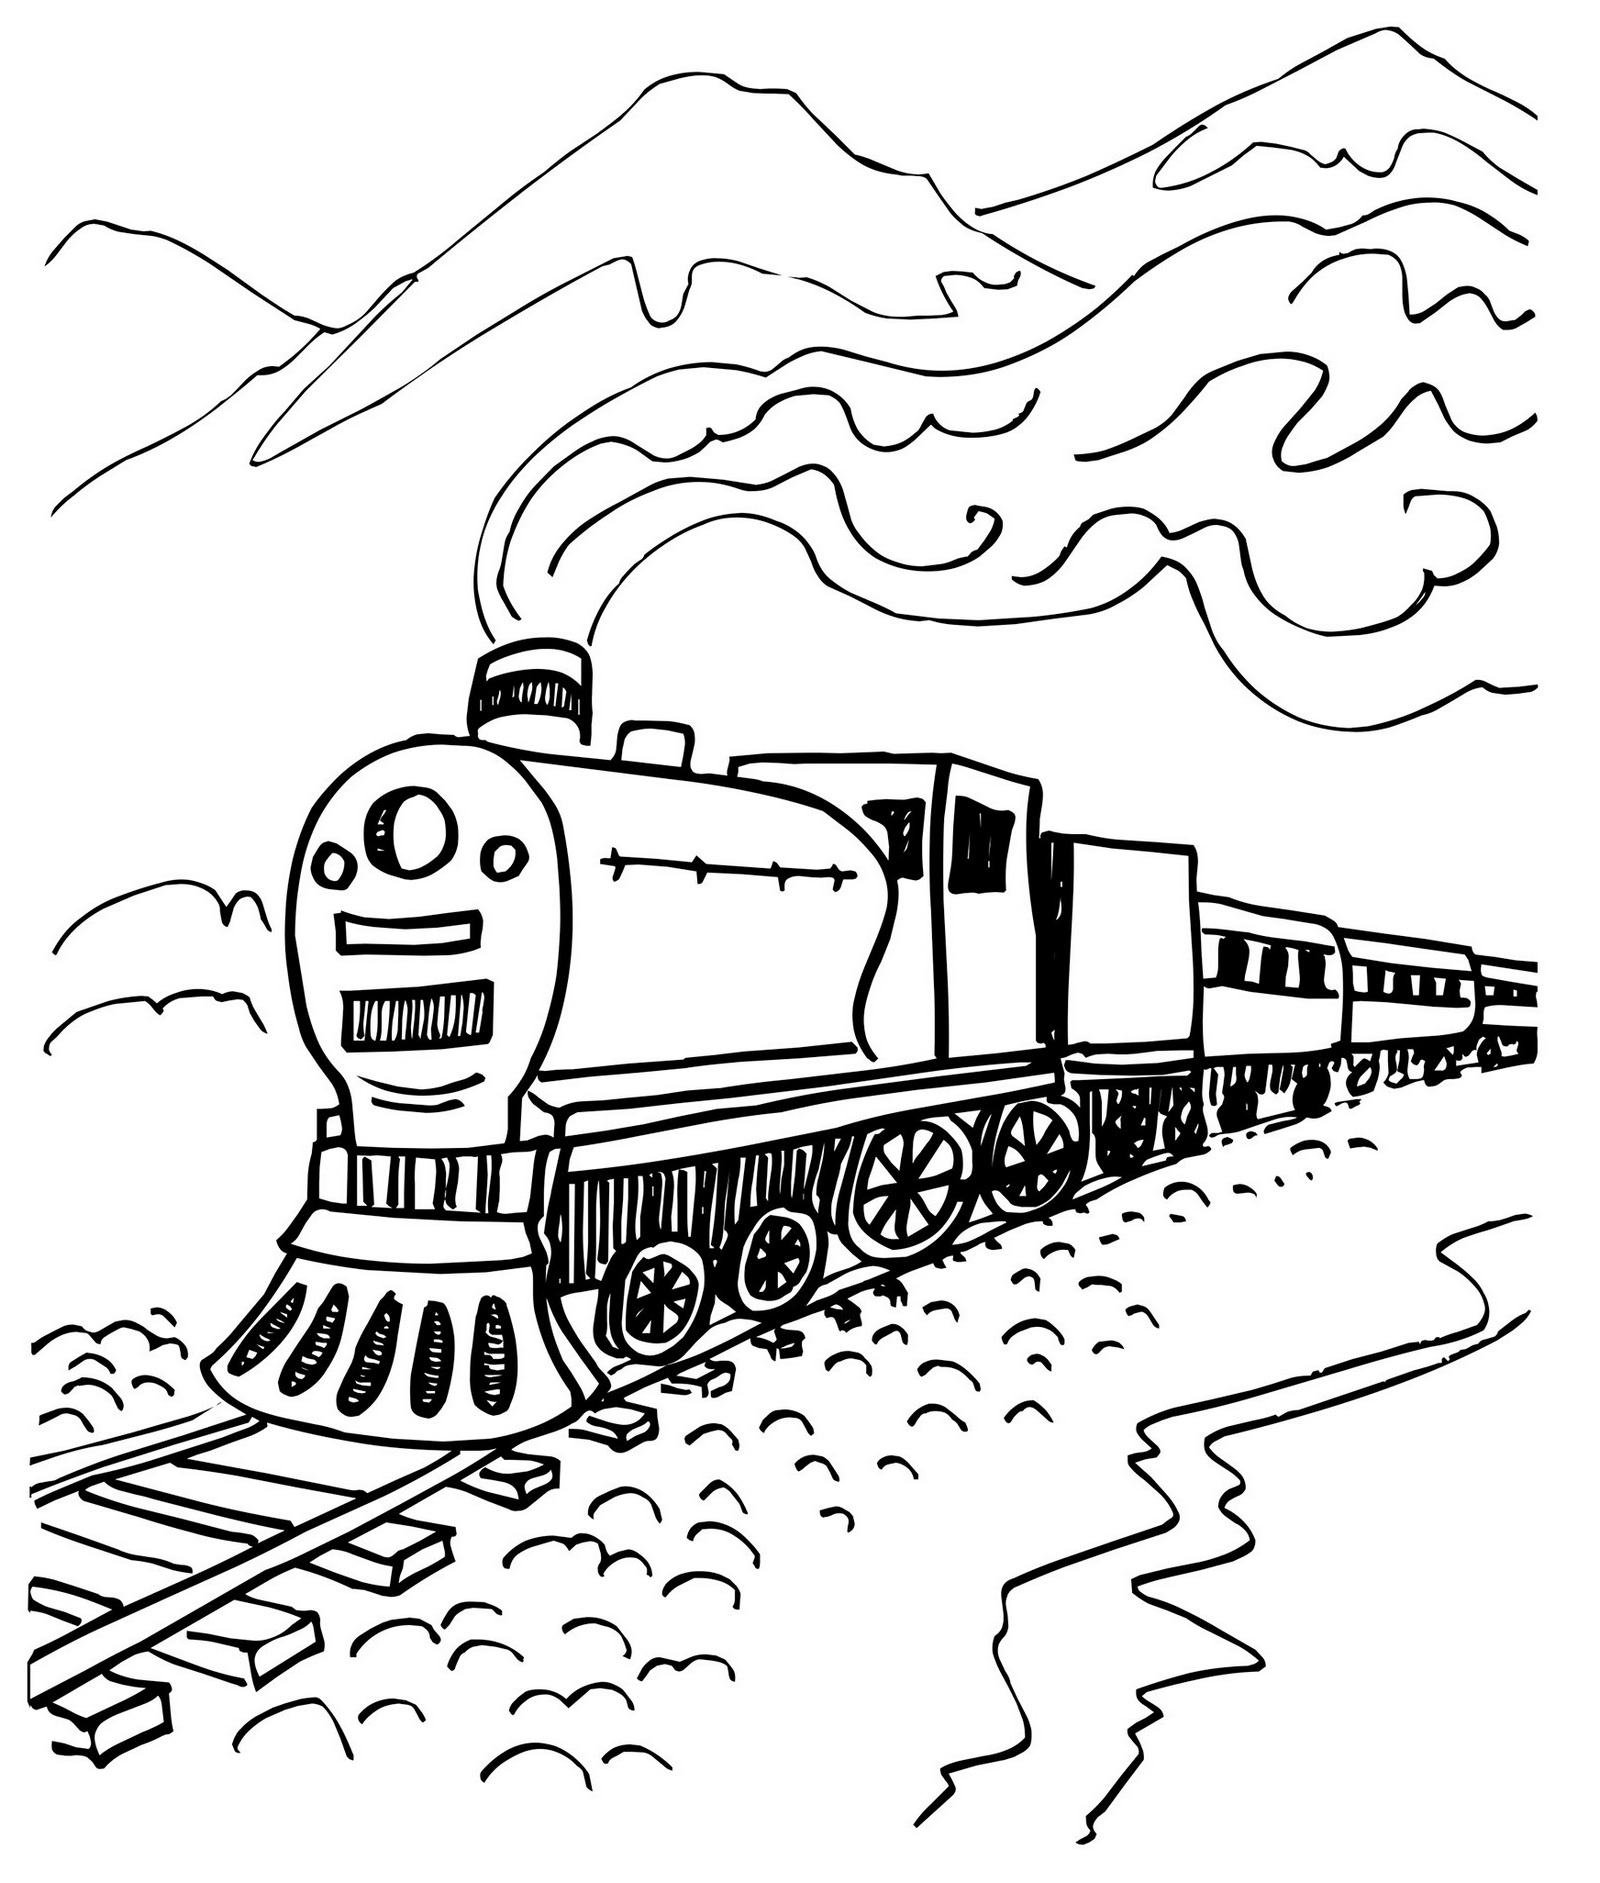 steam train coloring page with mountain scenery